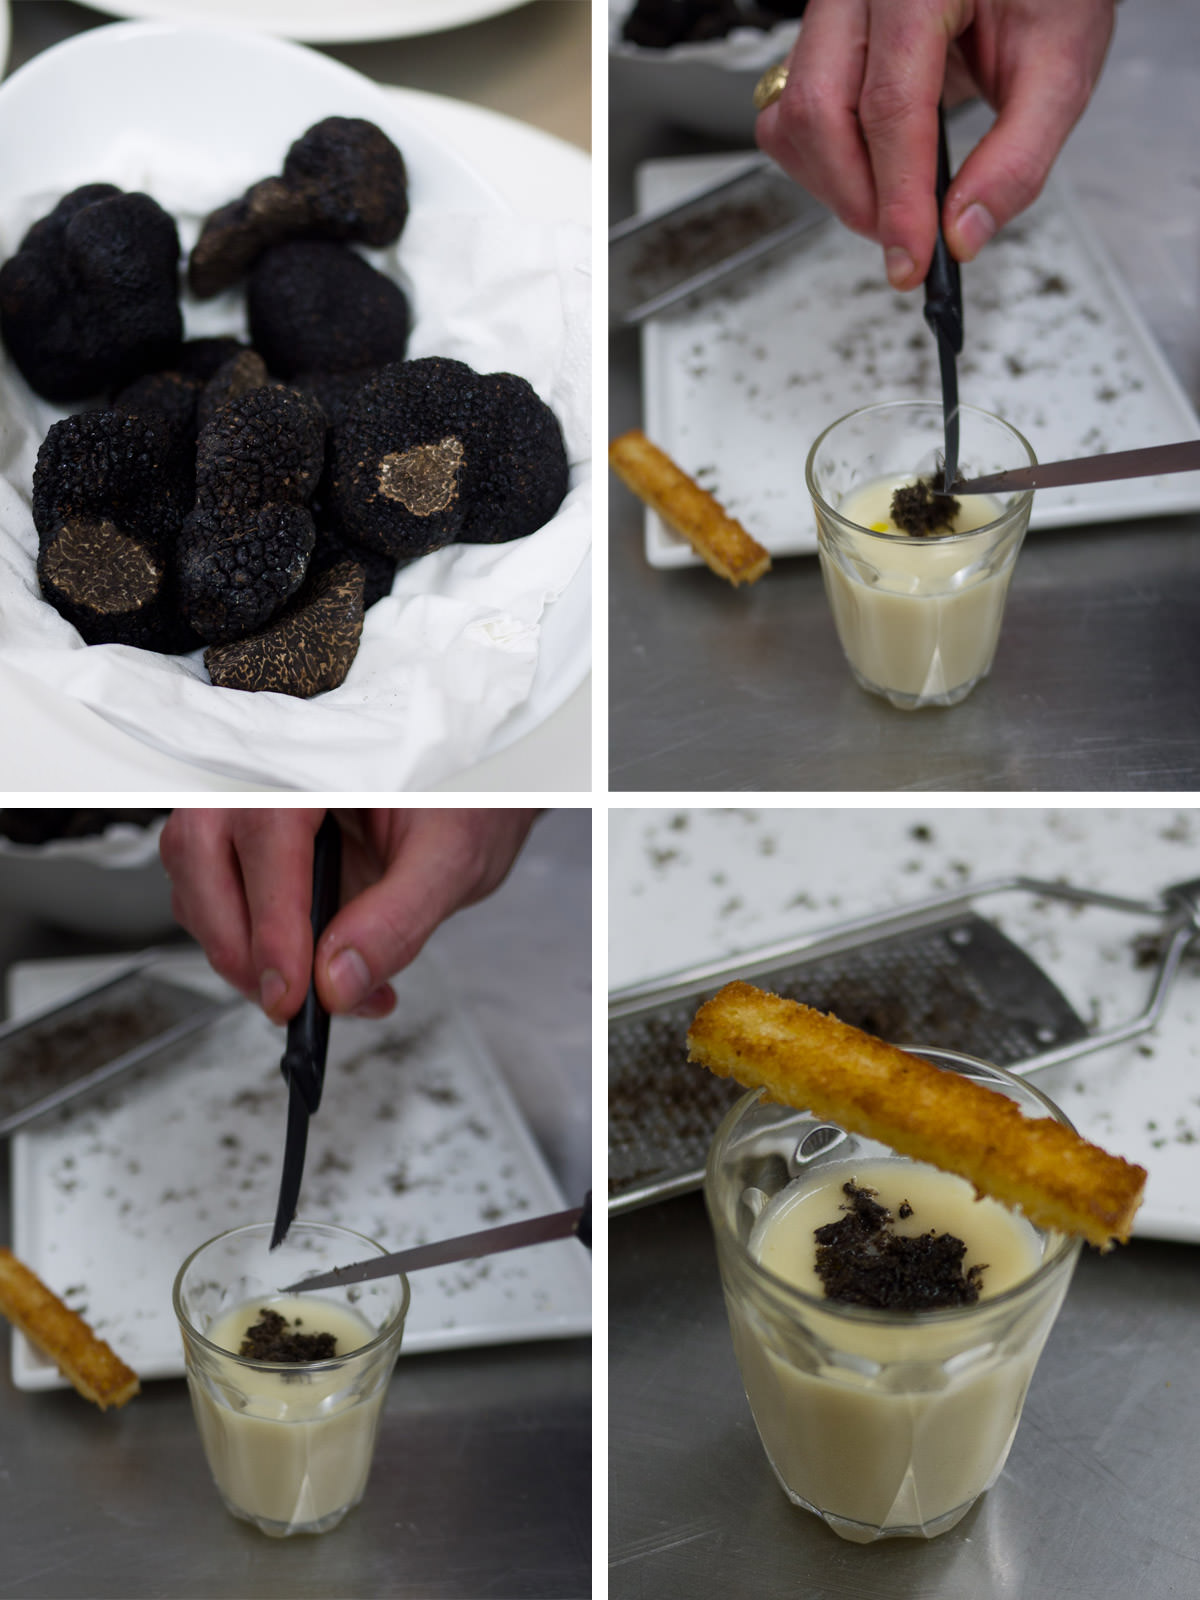 Amuse bouche - cream of cauliflower soup with shaved truffle